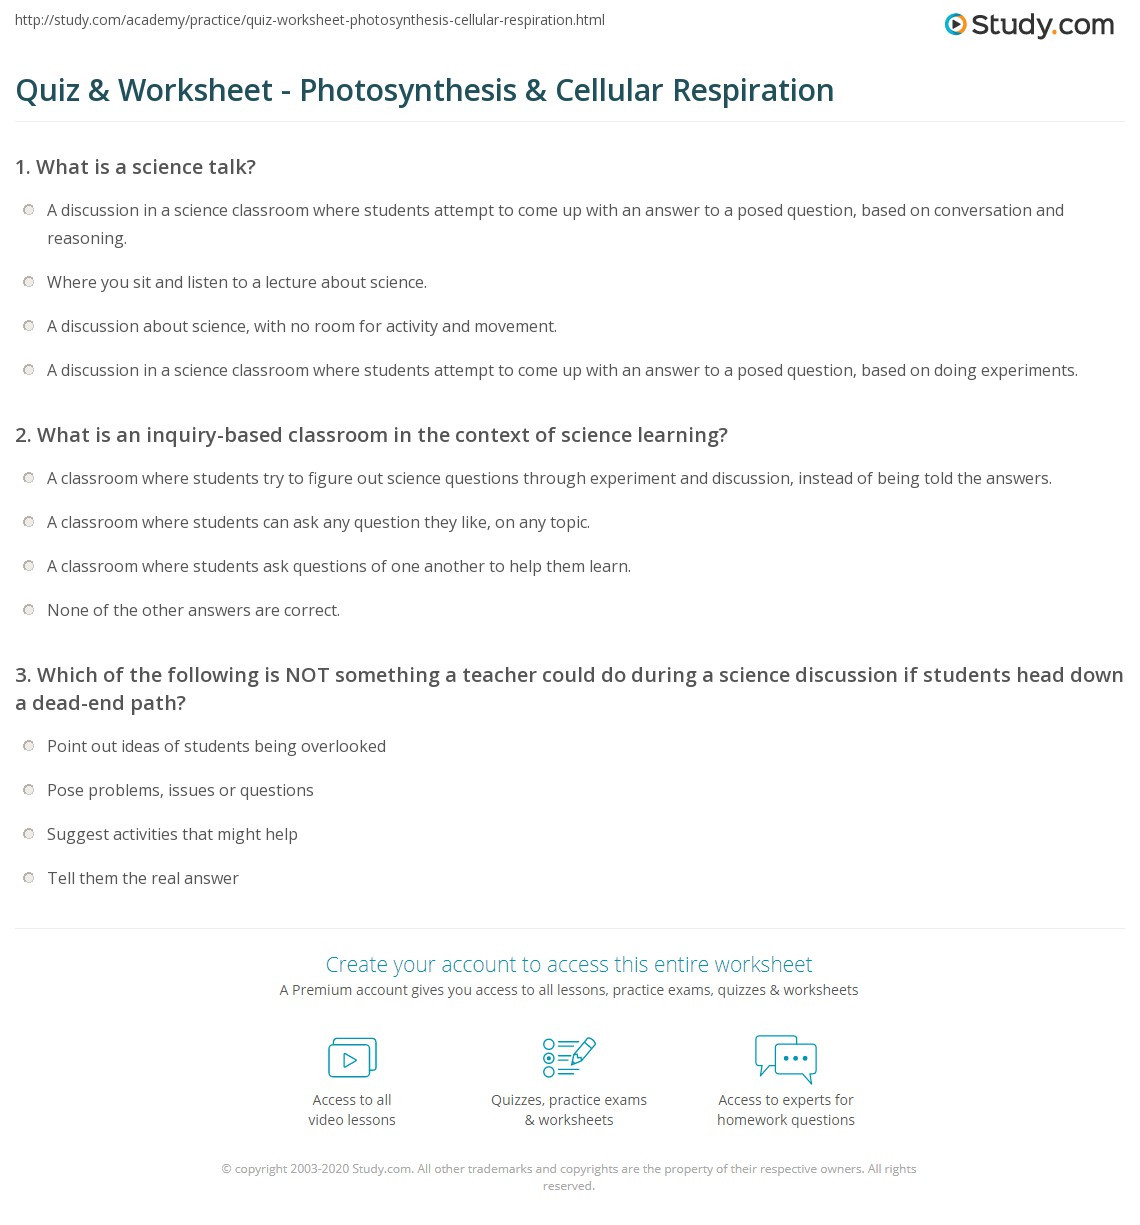 30 Photosynthesis And Respiration Worksheet Answers